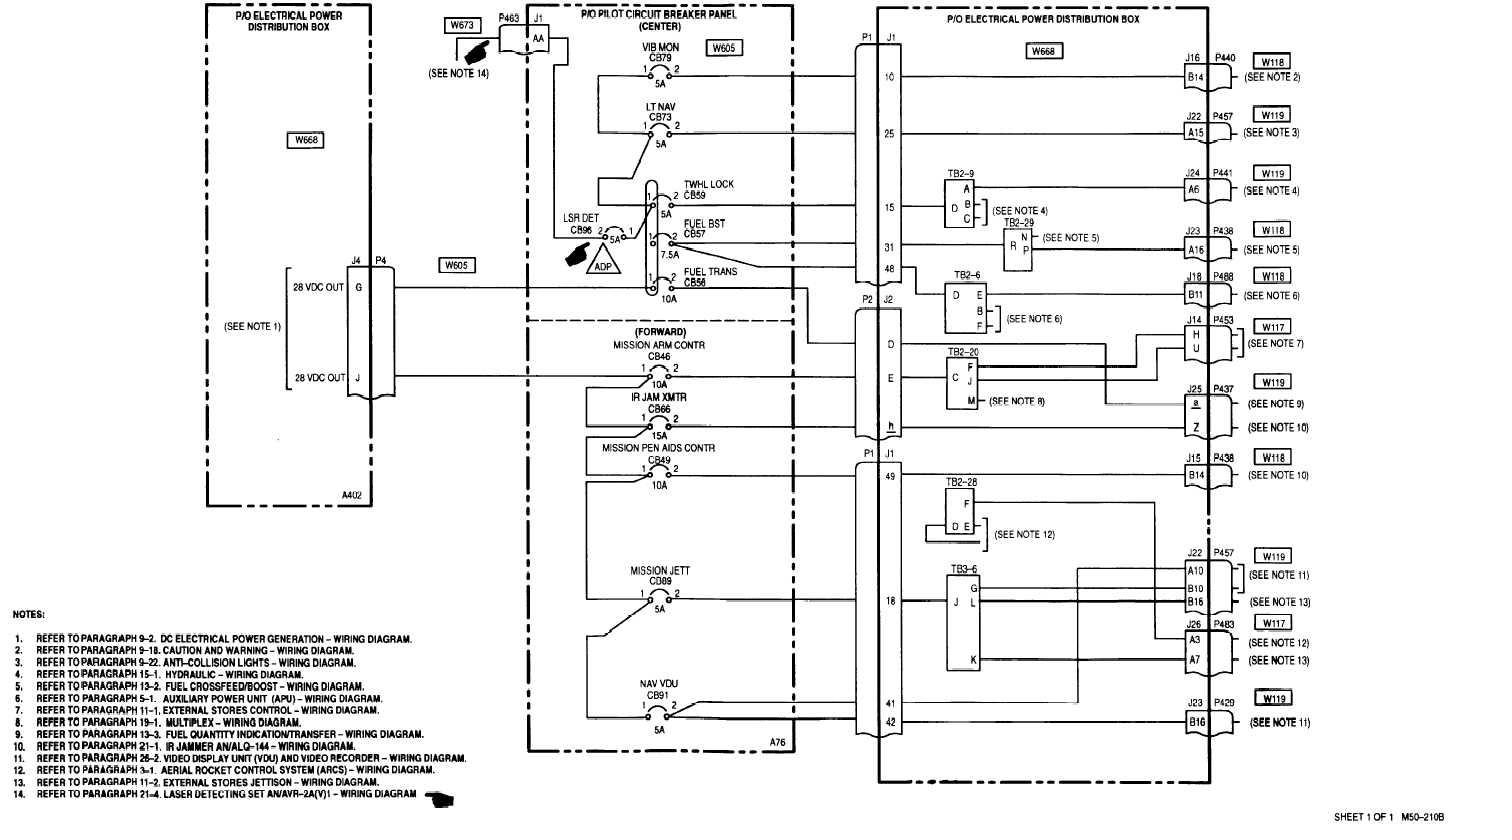 9-11. CIRCUIT PROTECTION (DC ESSENTIAL BUS 2 - PILOT STATION ... on switch diagrams, series and parallel circuits diagrams, electrical diagrams, lighting diagrams, pinout diagrams, transformer diagrams, smart car diagrams, hvac diagrams, gmc fuse box diagrams, friendship bracelet diagrams, sincgars radio configurations diagrams, motor diagrams, internet of things diagrams, engine diagrams, electronic circuit diagrams, troubleshooting diagrams, battery diagrams, honda motorcycle repair diagrams, led circuit diagrams,